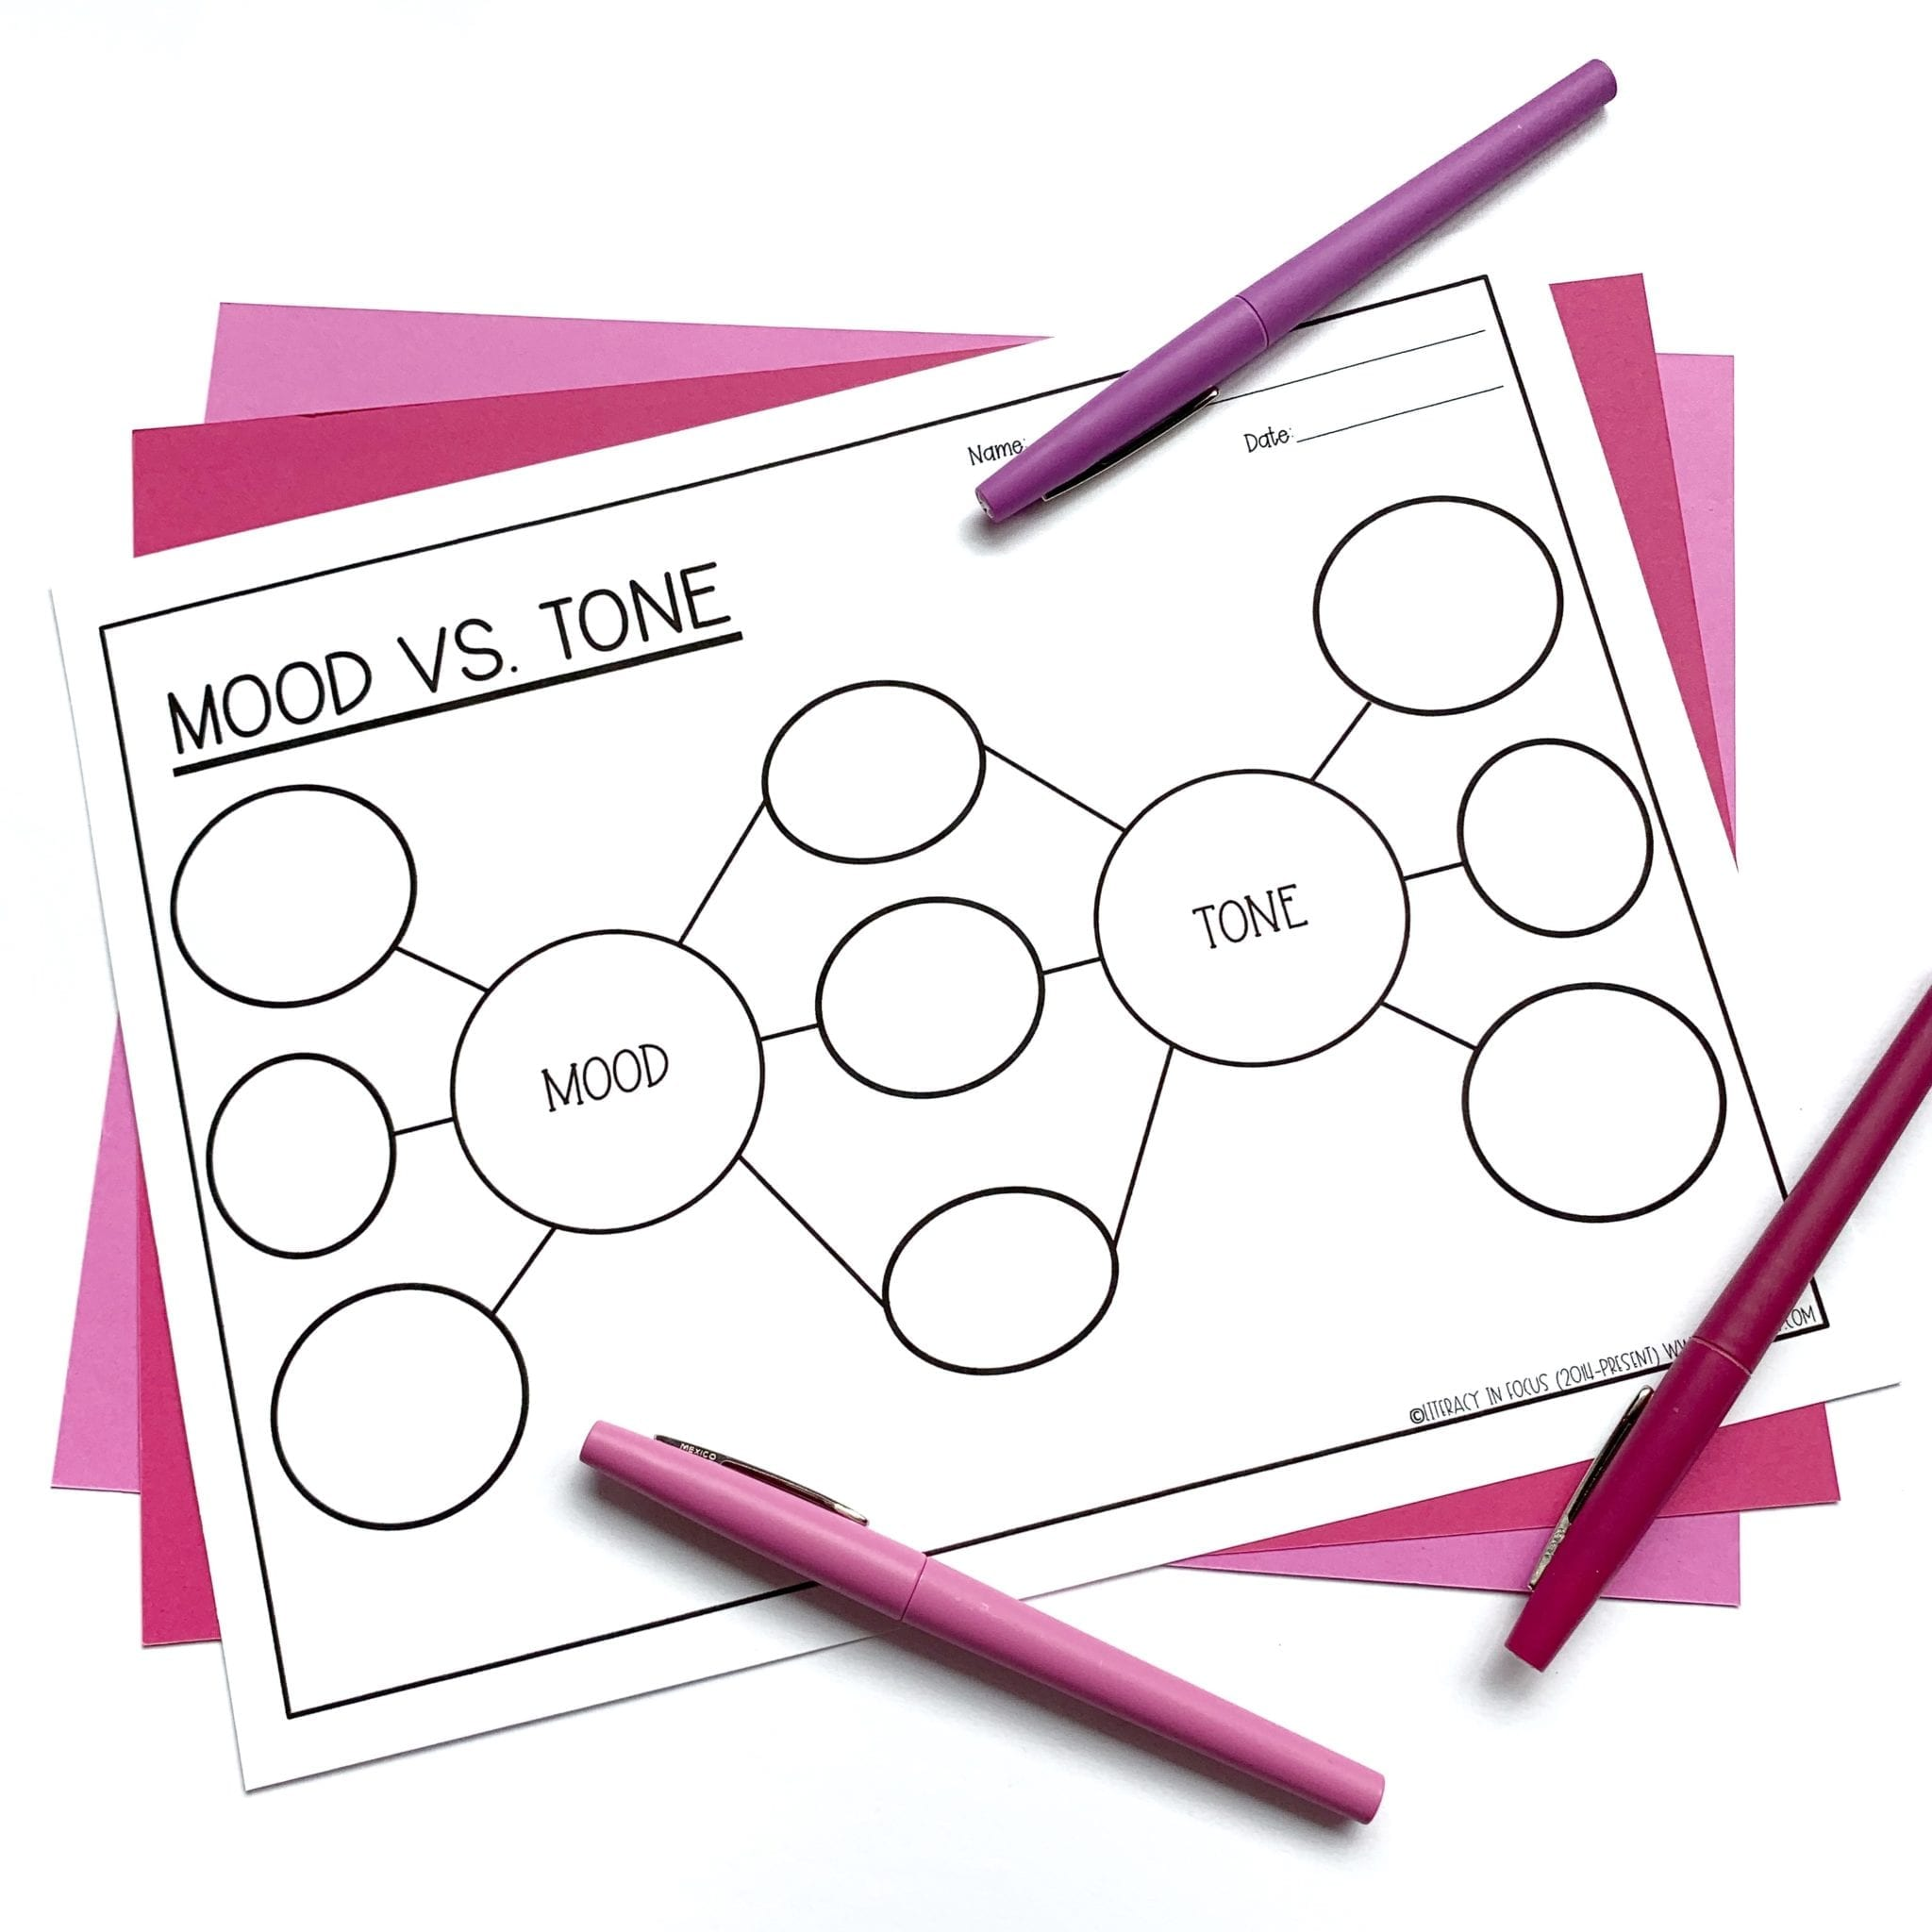 Mood vs Tone Graphic Organizer